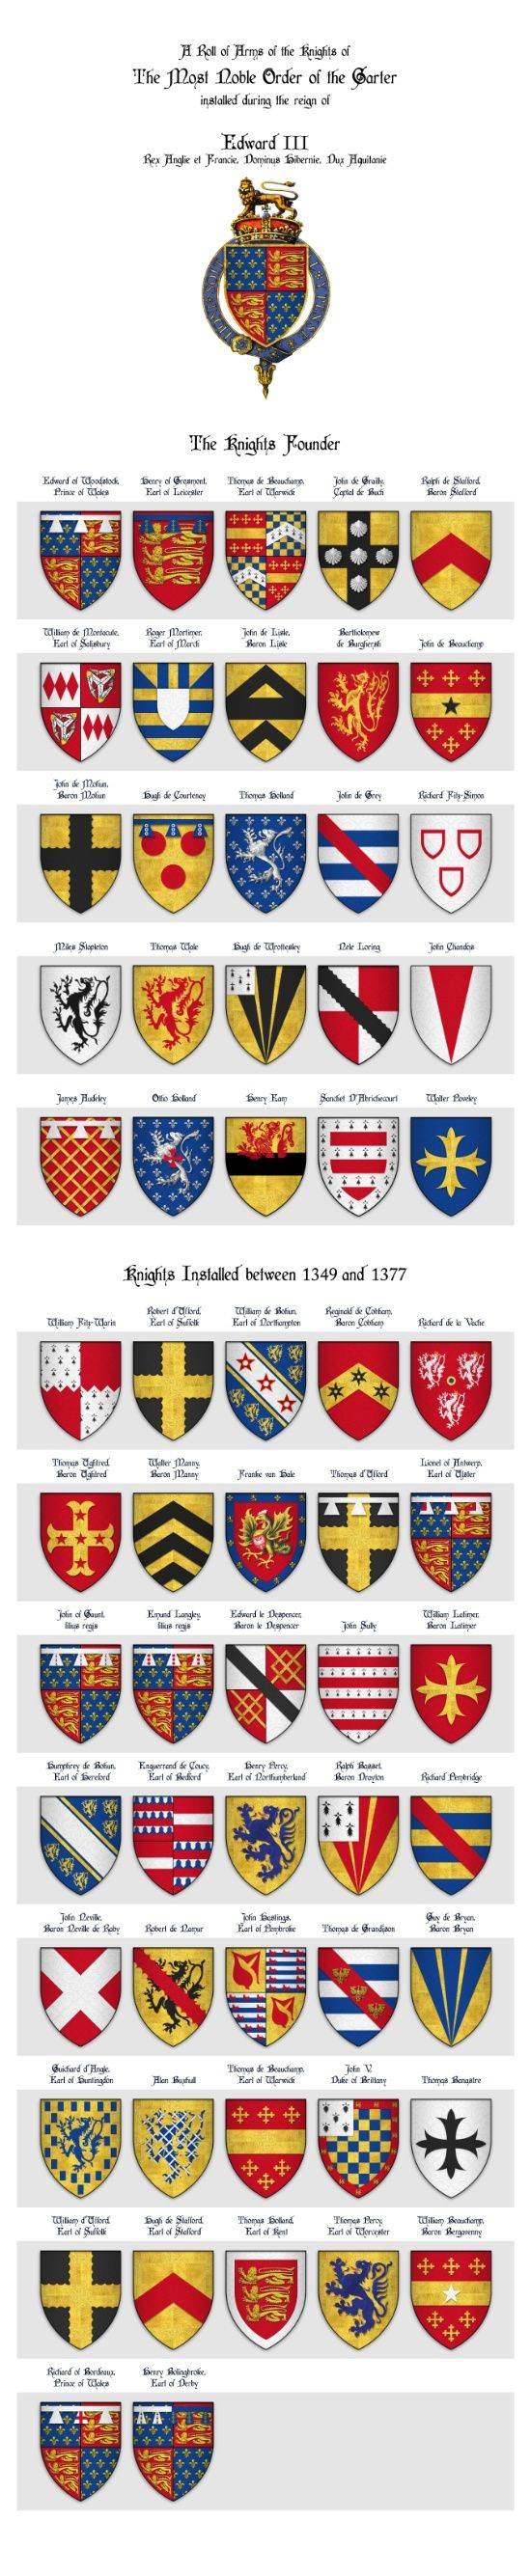 KING EDWARD III - Roll of Arms of the Knights of the Garter installed during his reign Art Print